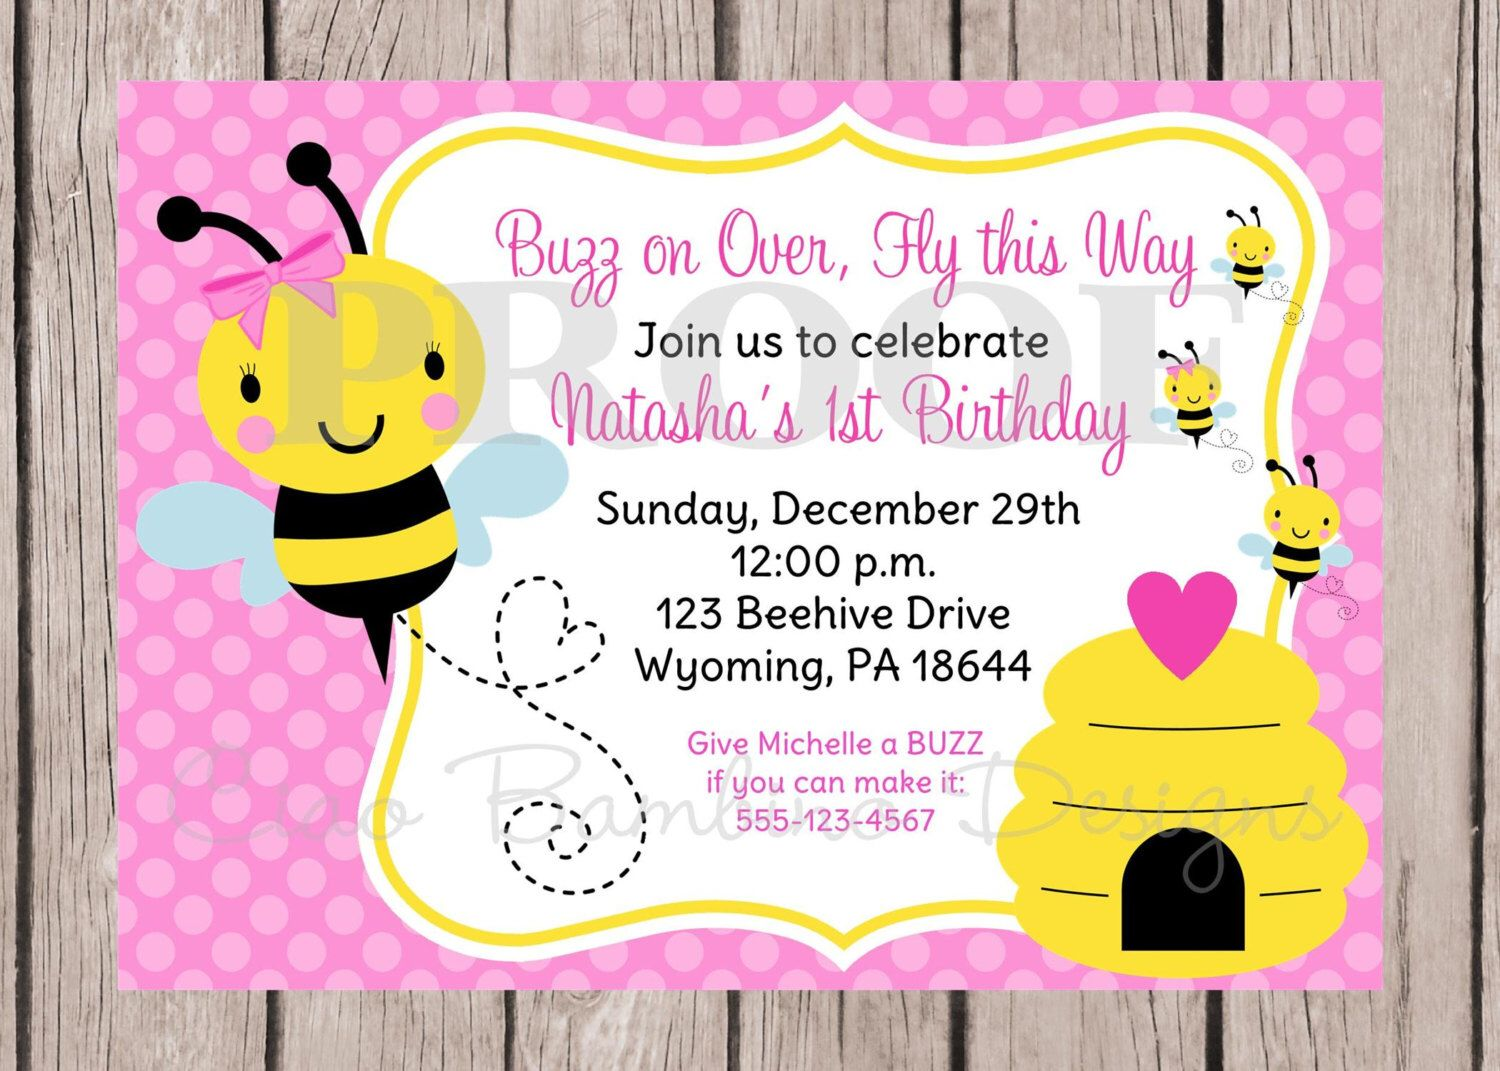 PRINTABLE Pink Bumble Bee Birthday Party or Baby Shower Invitation / Bumble Bee / Pink and Yellow BEEDay Party / You Print by ciaobambino on Etsy https://www.etsy.com/listing/160620568/printable-pink-bumble-bee-birthday-party